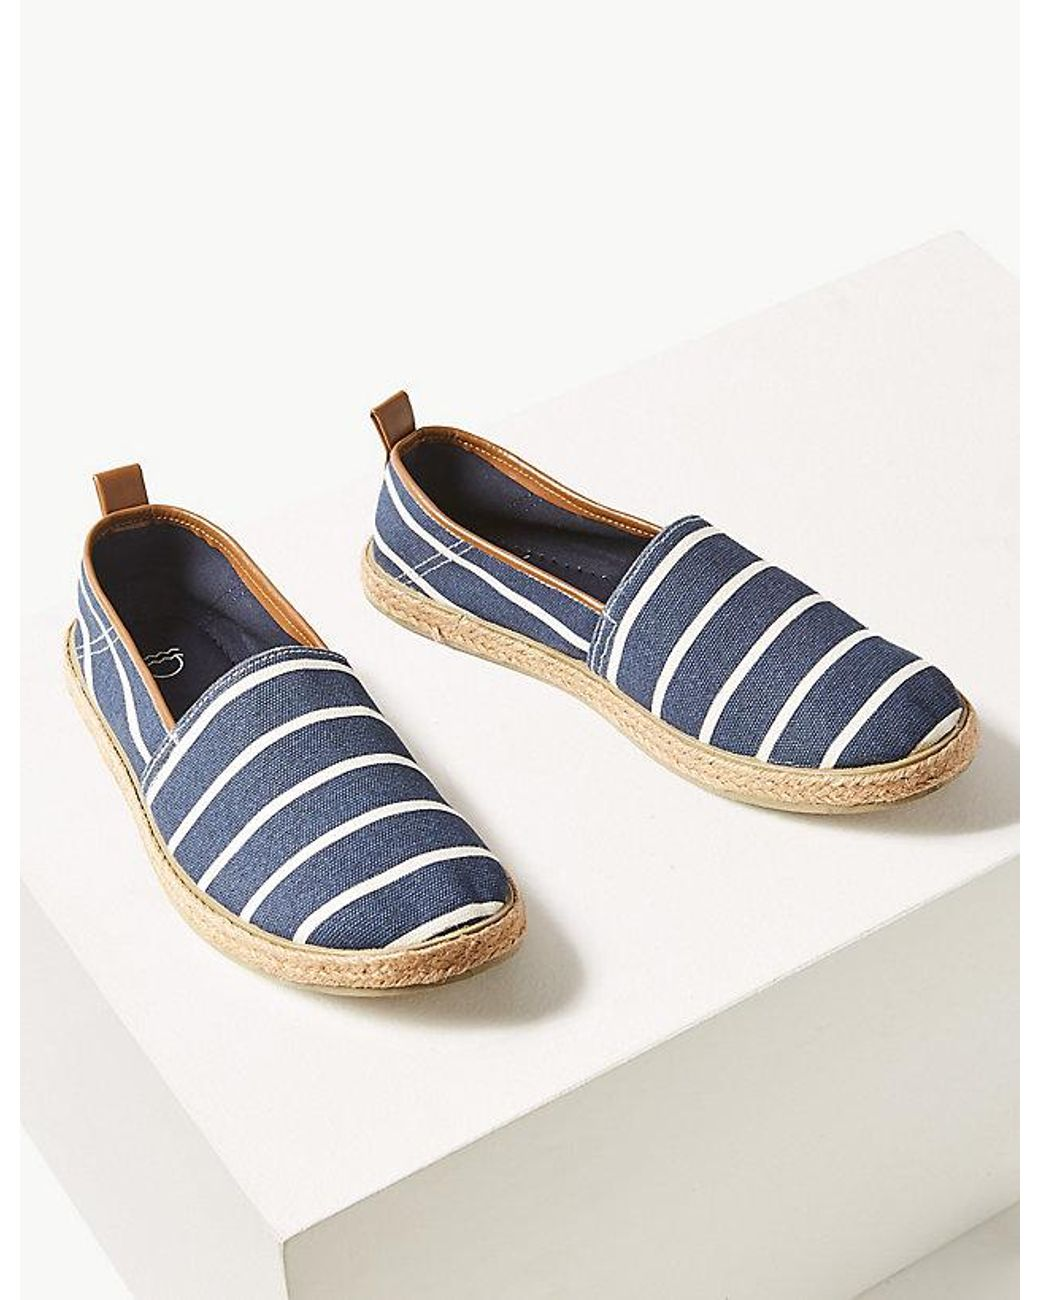 c68b26768 Marks & Spencer Cotton Slip-on Espadrilles in Blue for Men - Lyst